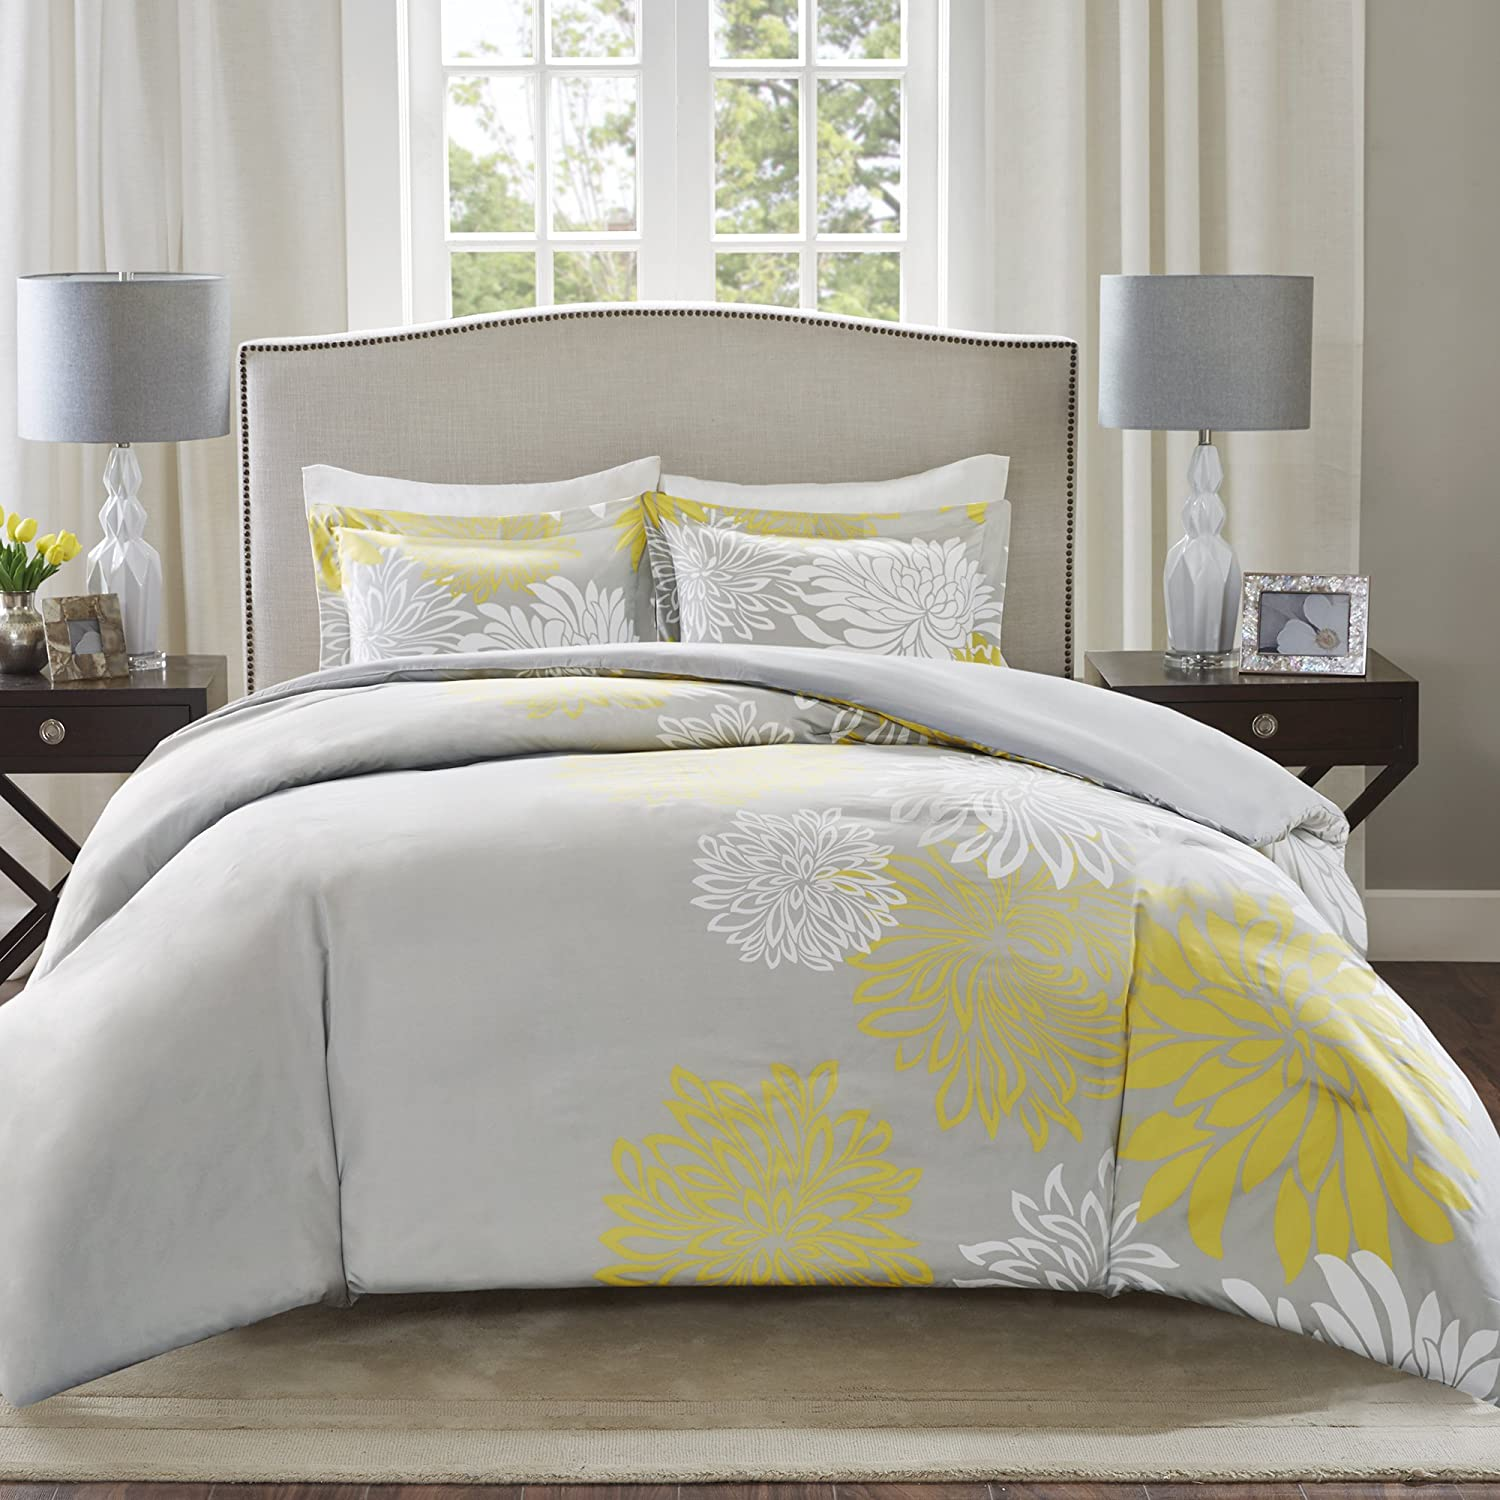 Comfort Spaces Enya 5 Piece Comforter Set Ultra Soft Hypoallergenic Microfiber Floral Print Bedding, King, Yellow/Grey